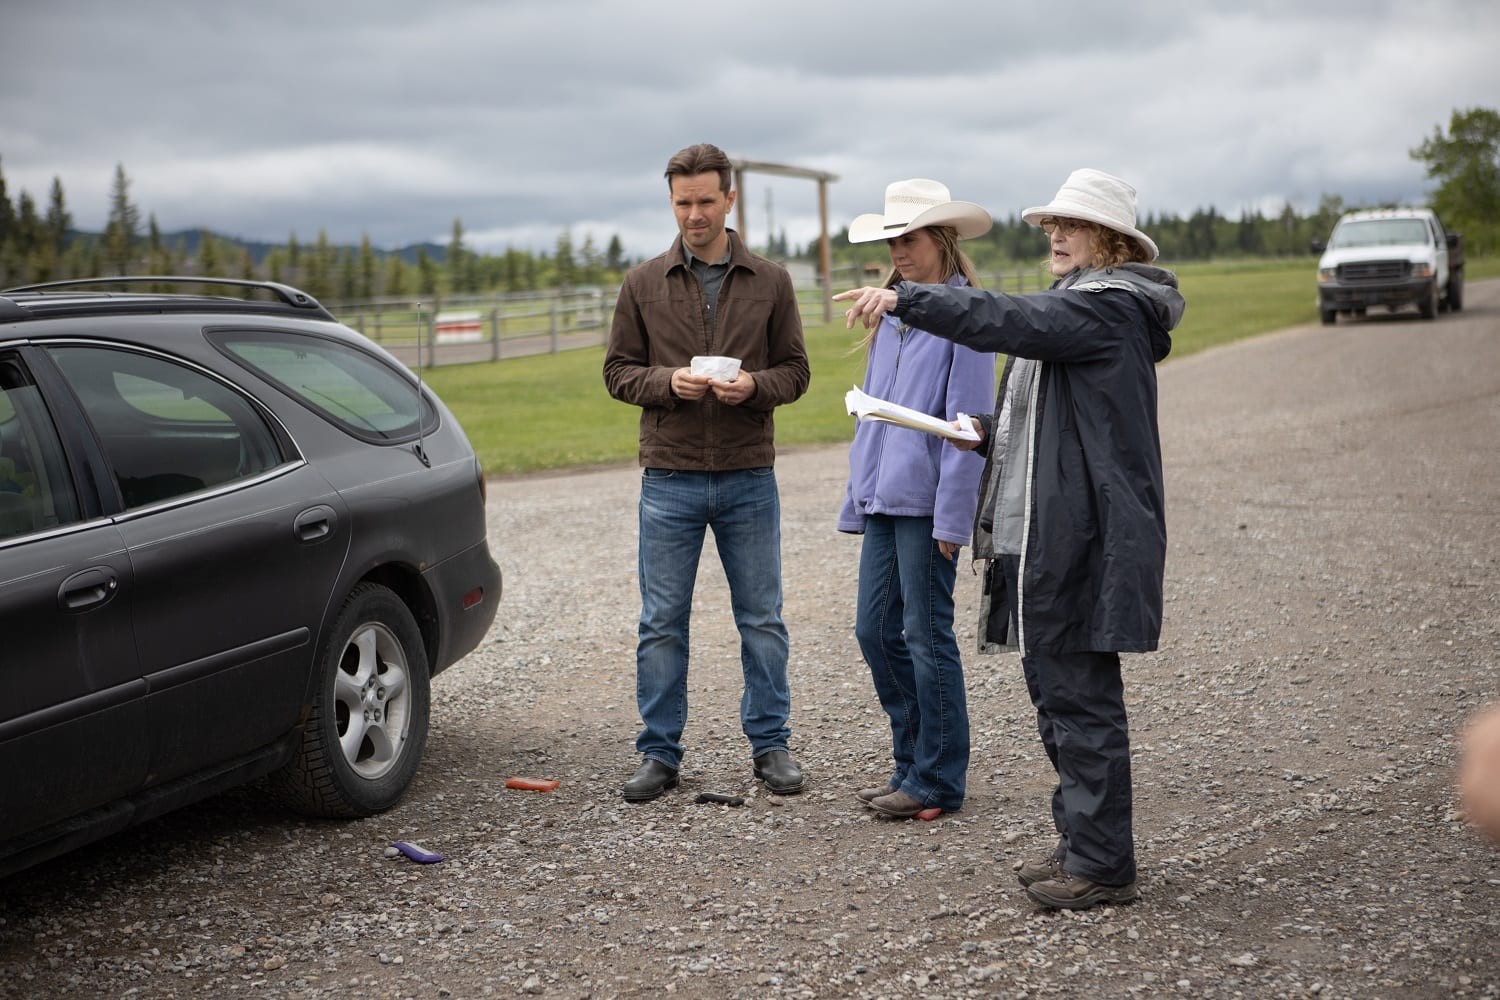 Heartland Season 13 Production Updates!